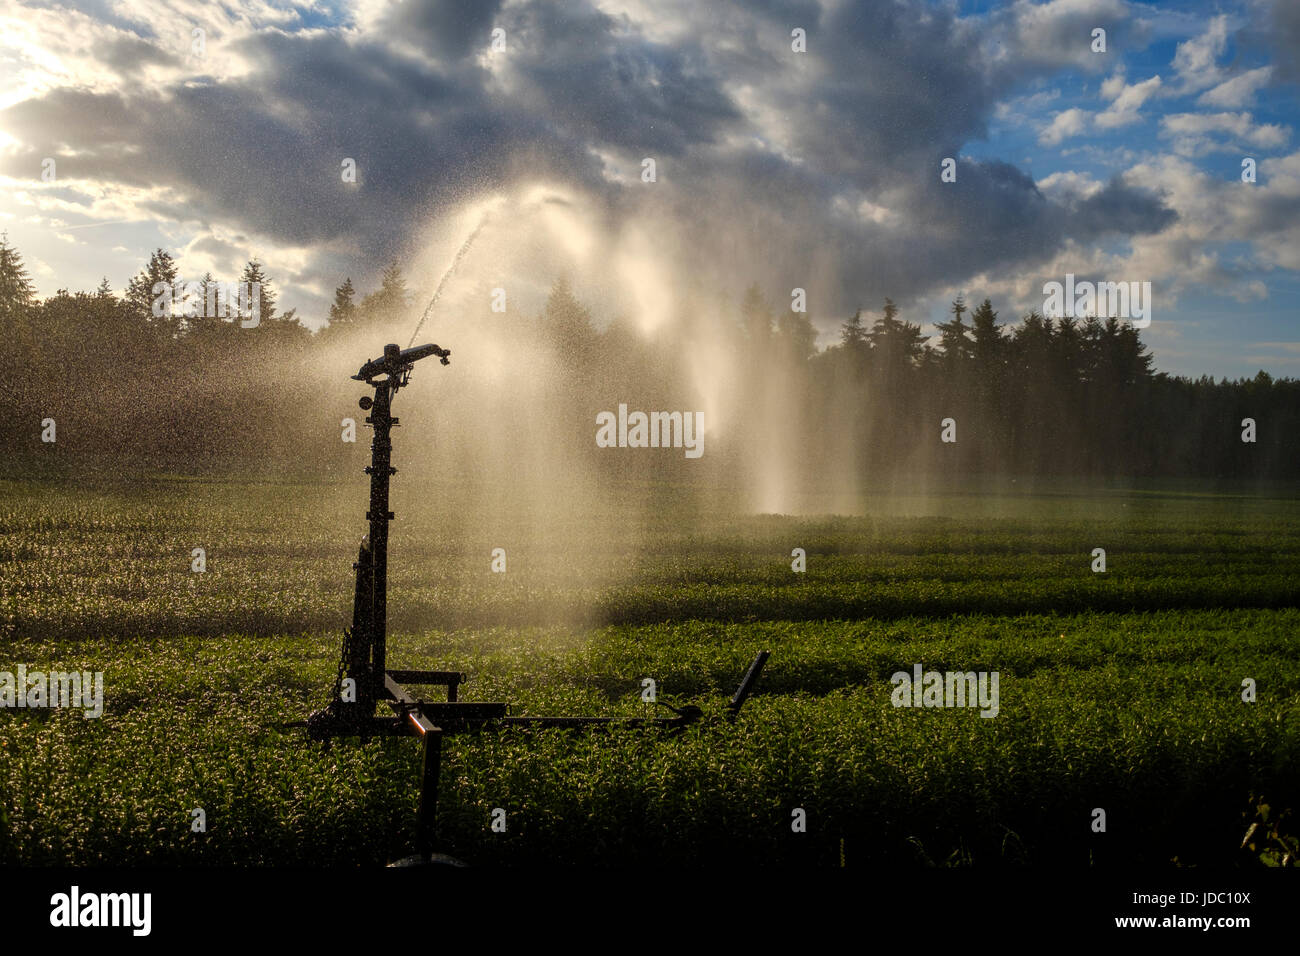 Crop spraying with a water cannon sprinkler ensures a proper distribution of water - Stock Image